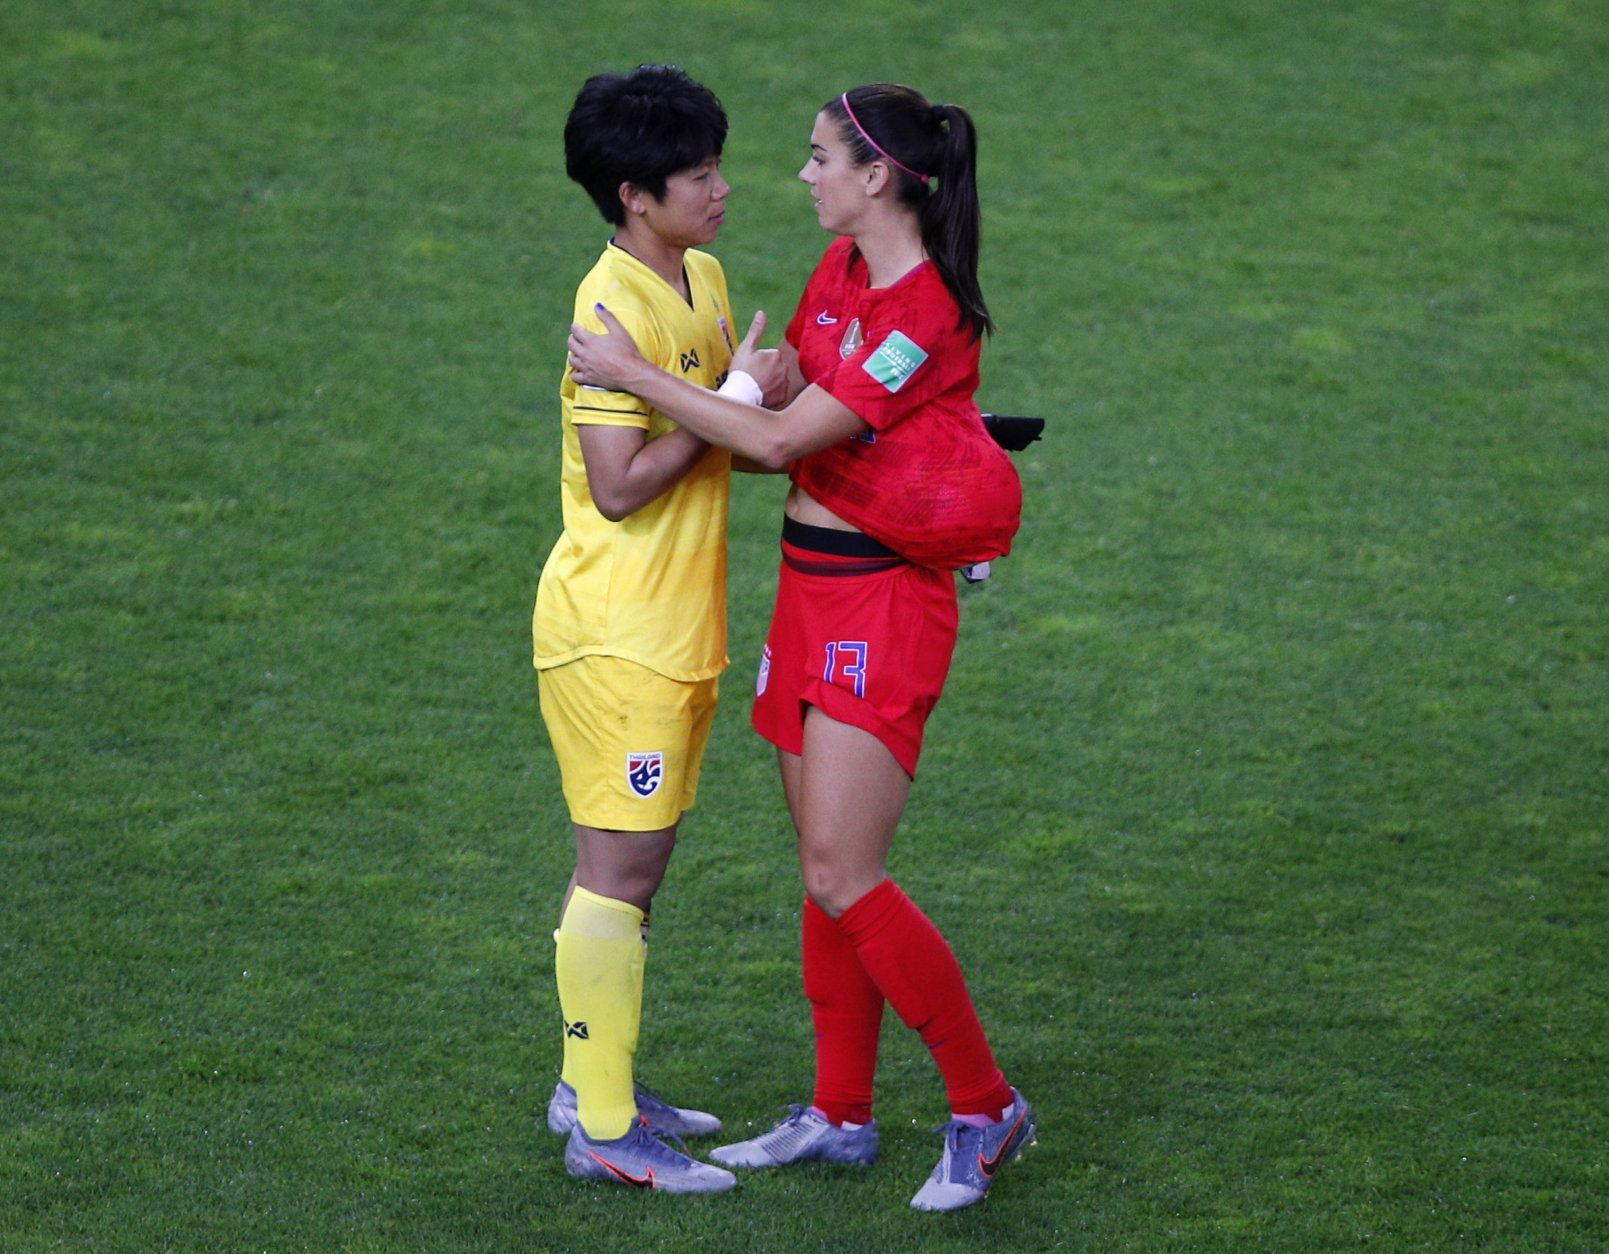 United States' Alex Morgan, right, talks with Thailand goalkeeper Waraporn Boonsing following their the Women's World Cup Group F soccer match between the United States and Thailand at the Stade Auguste-Delaune in Reims, France, Tuesday, June 11, 2019. The US defeated Thailand 13-0.(AP Photo/Francois Mori)